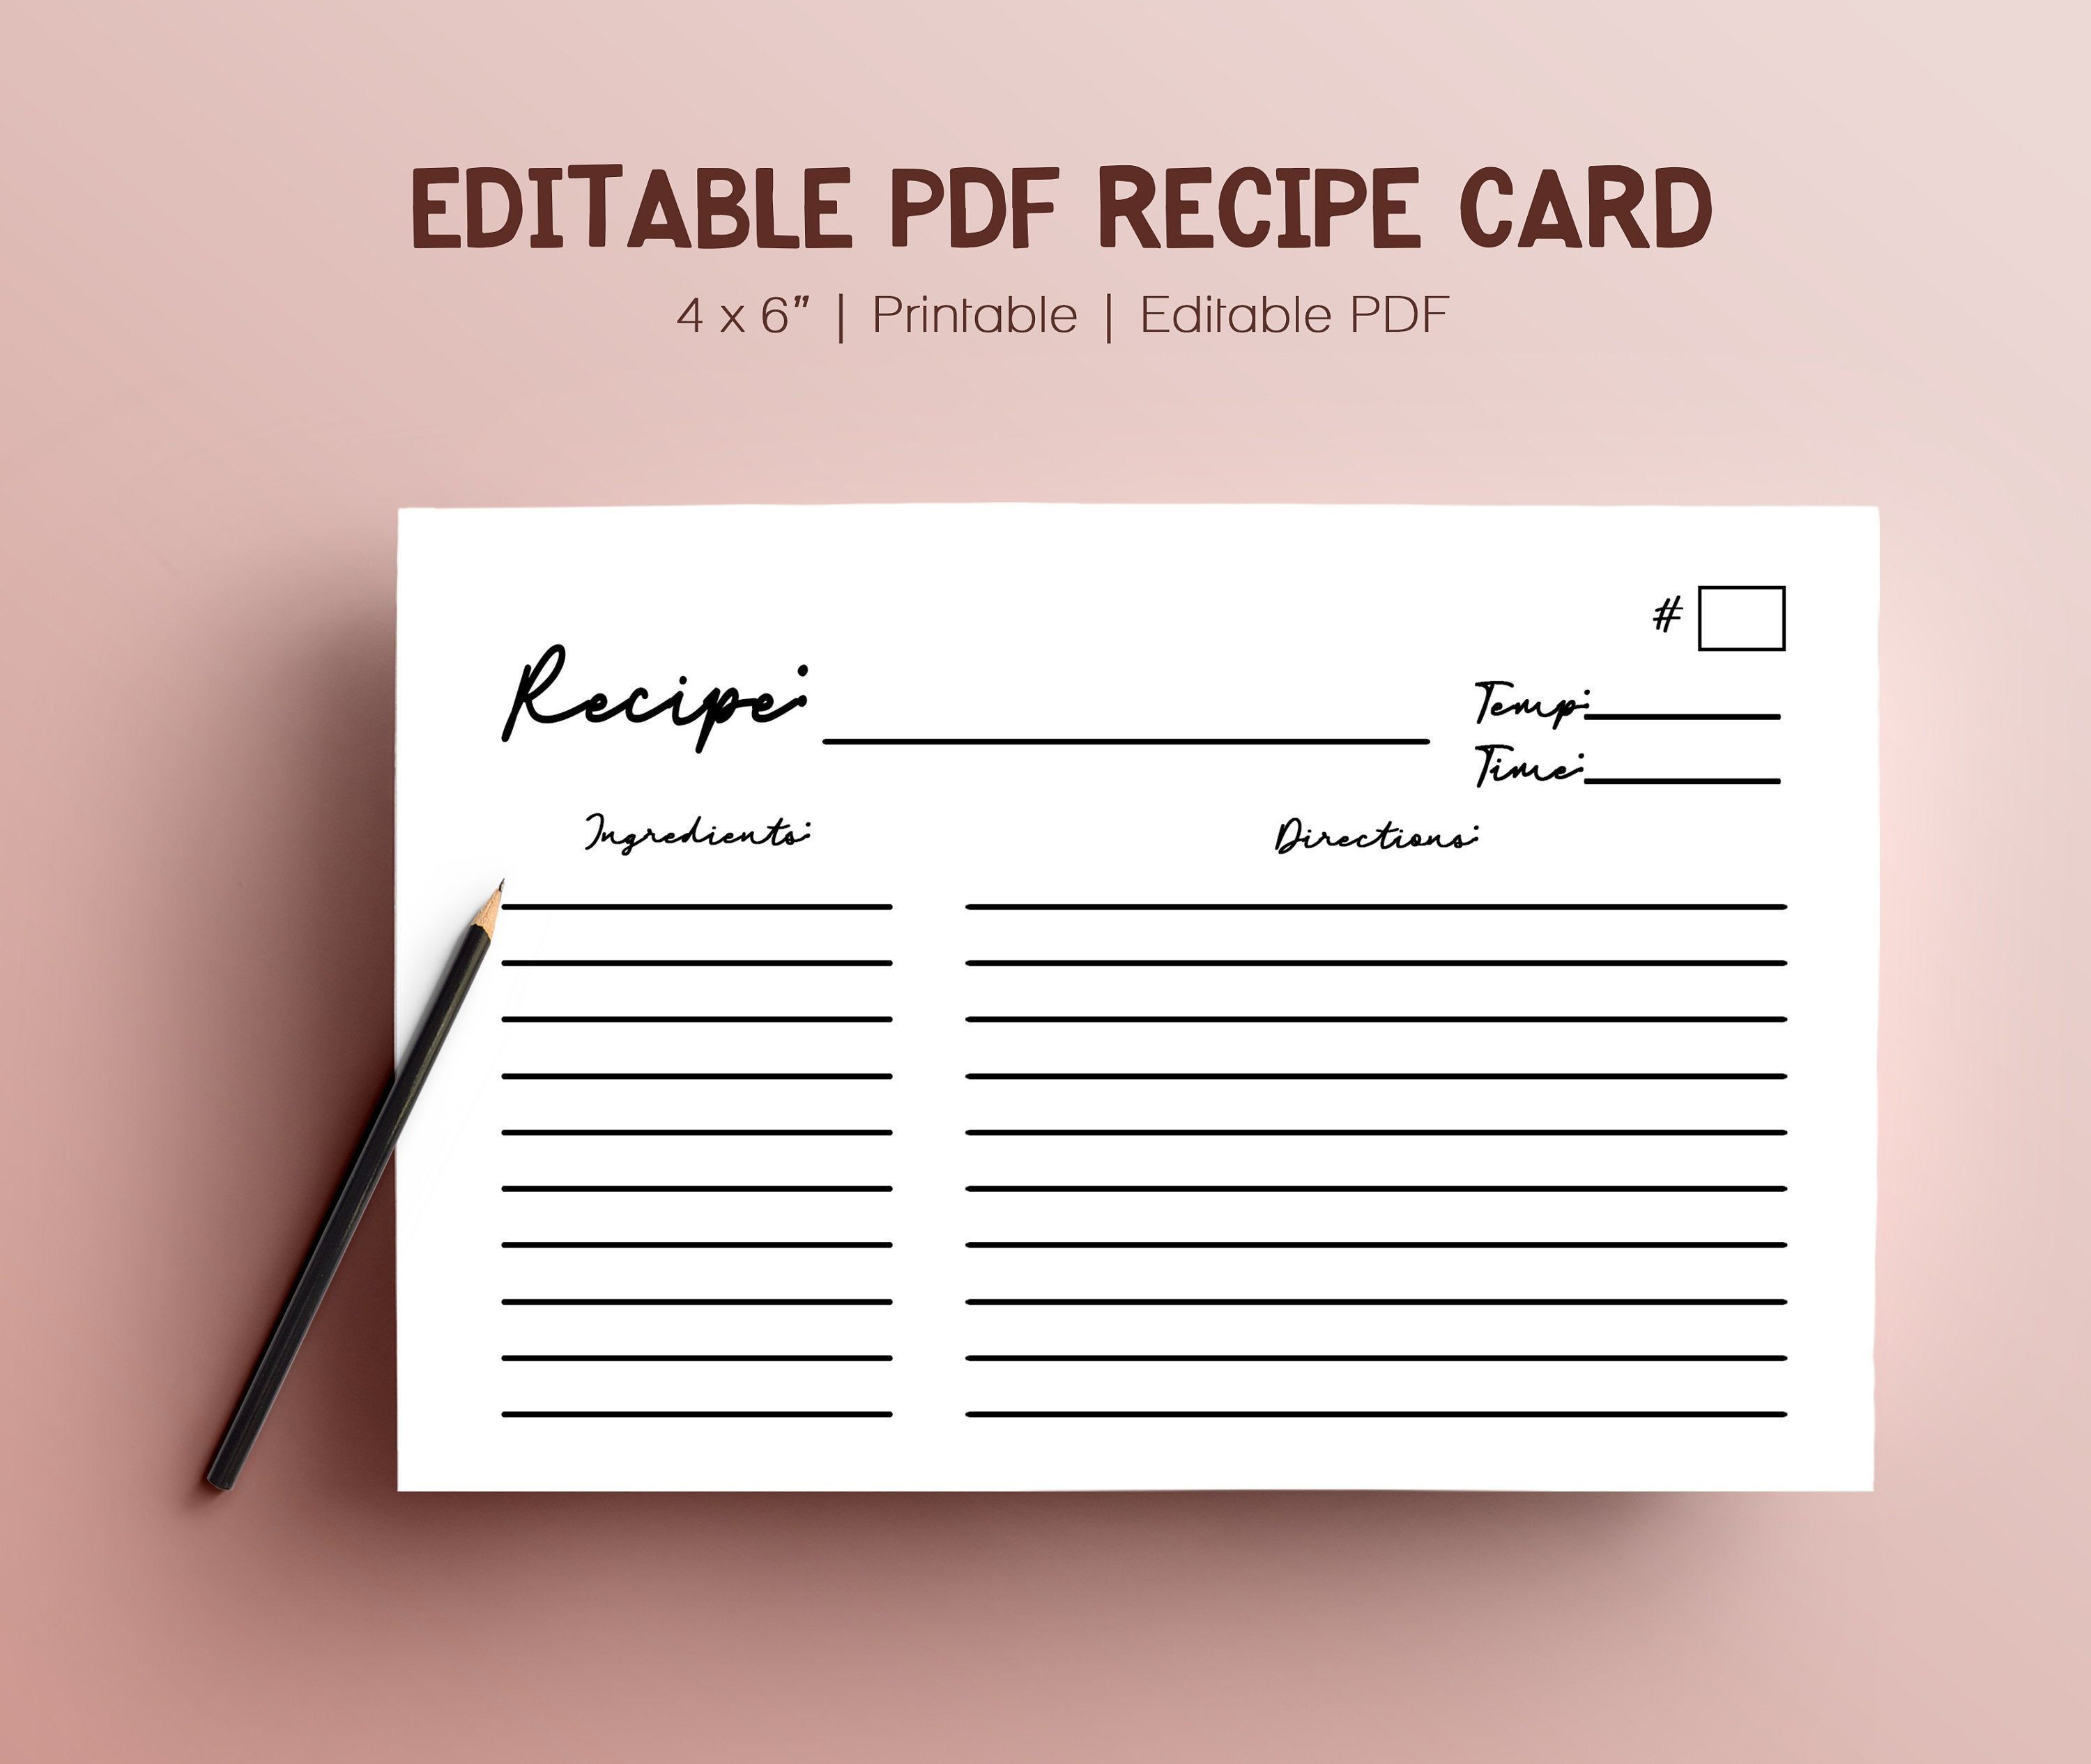 003 Exceptional Recipe Card Template For Word Example  Printable Blank FillableFull